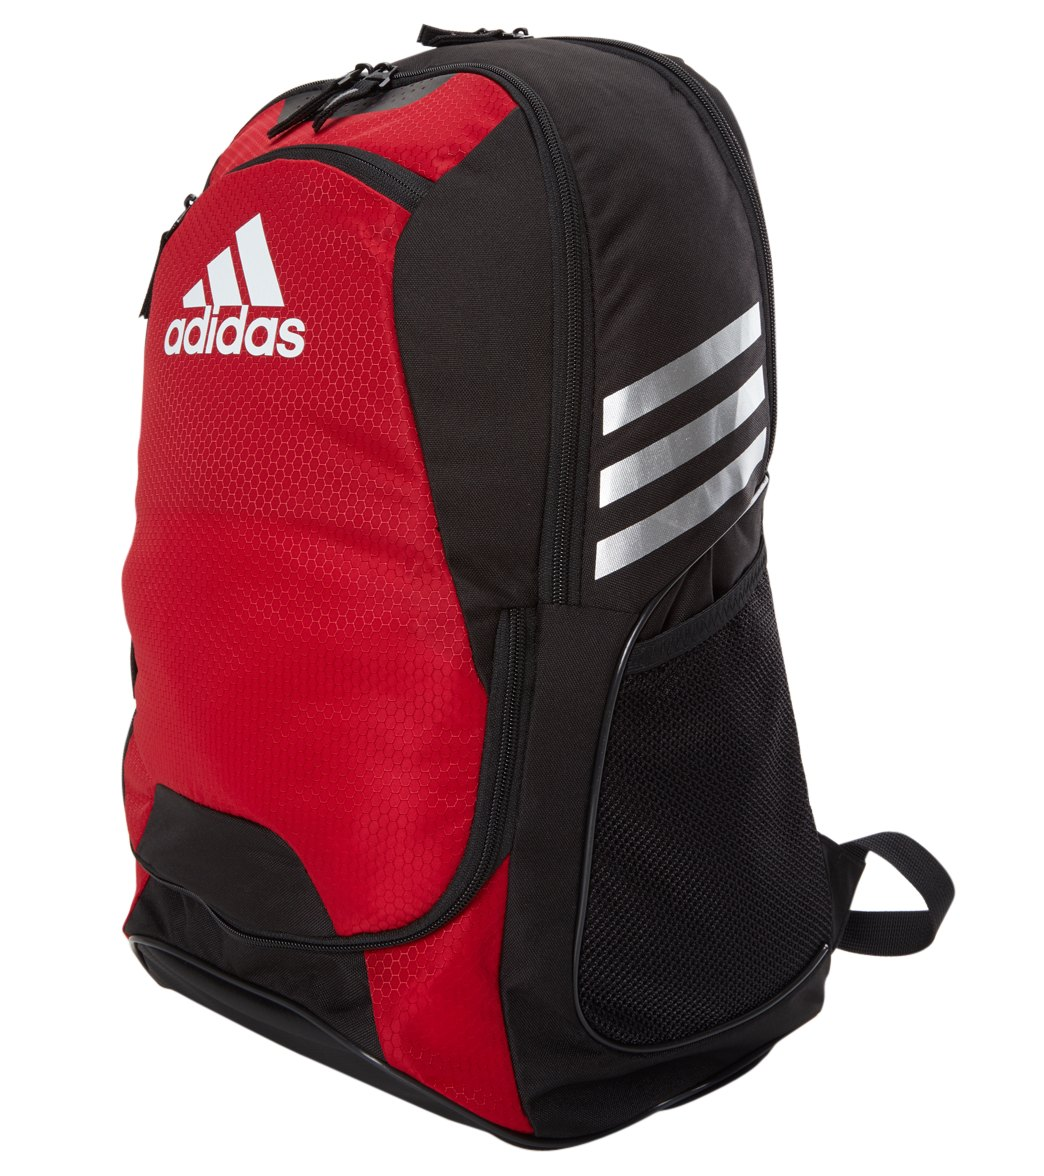 Adidas Stadium II Backpack C3000X at SwimOutlet.com - Free Shipping bbfbe2042eca2